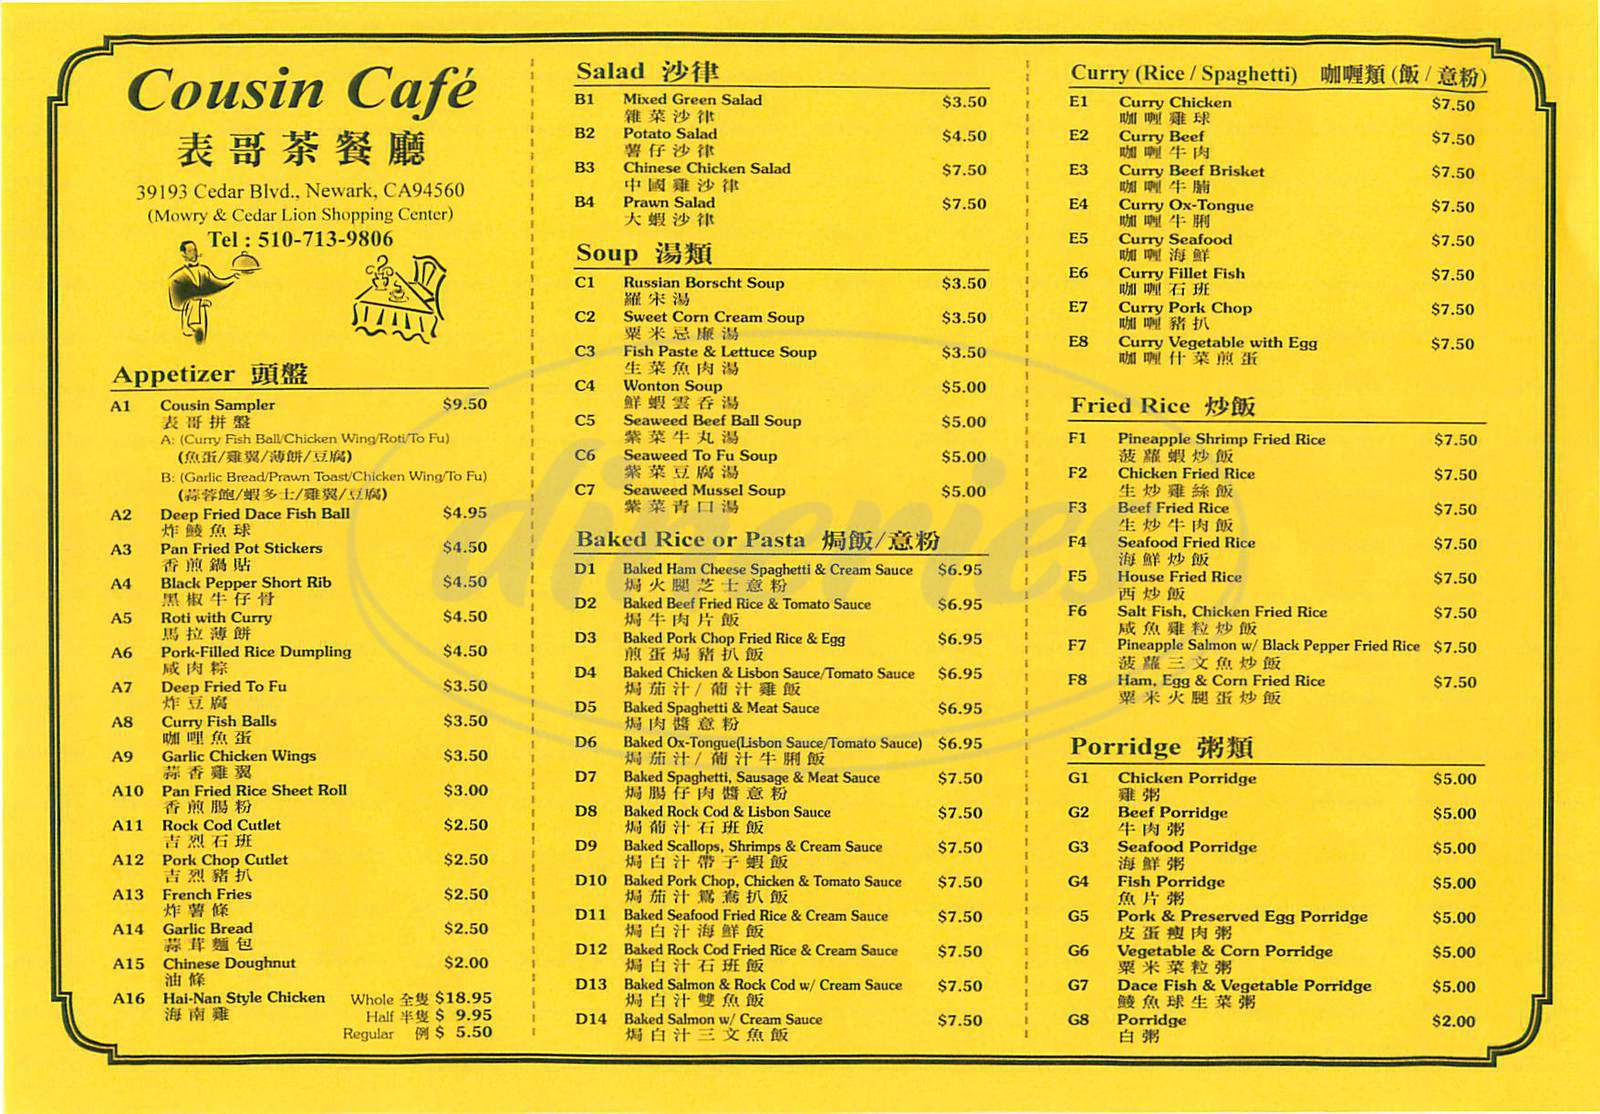 menu for Cousin Café